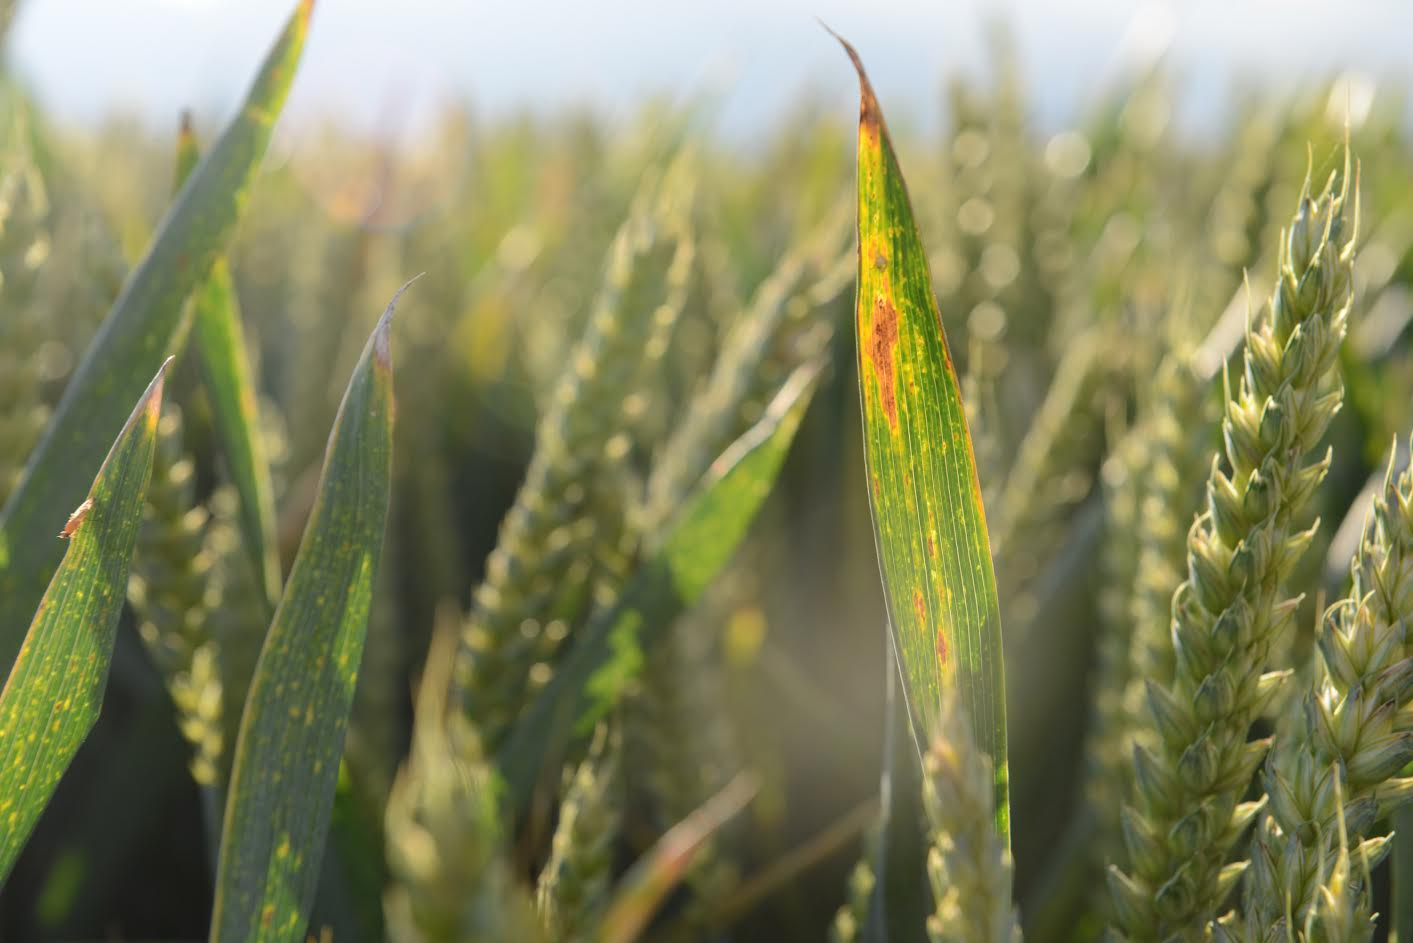 Barley Yellow Dwarf Virus surges in crops as warm autumn hits UK